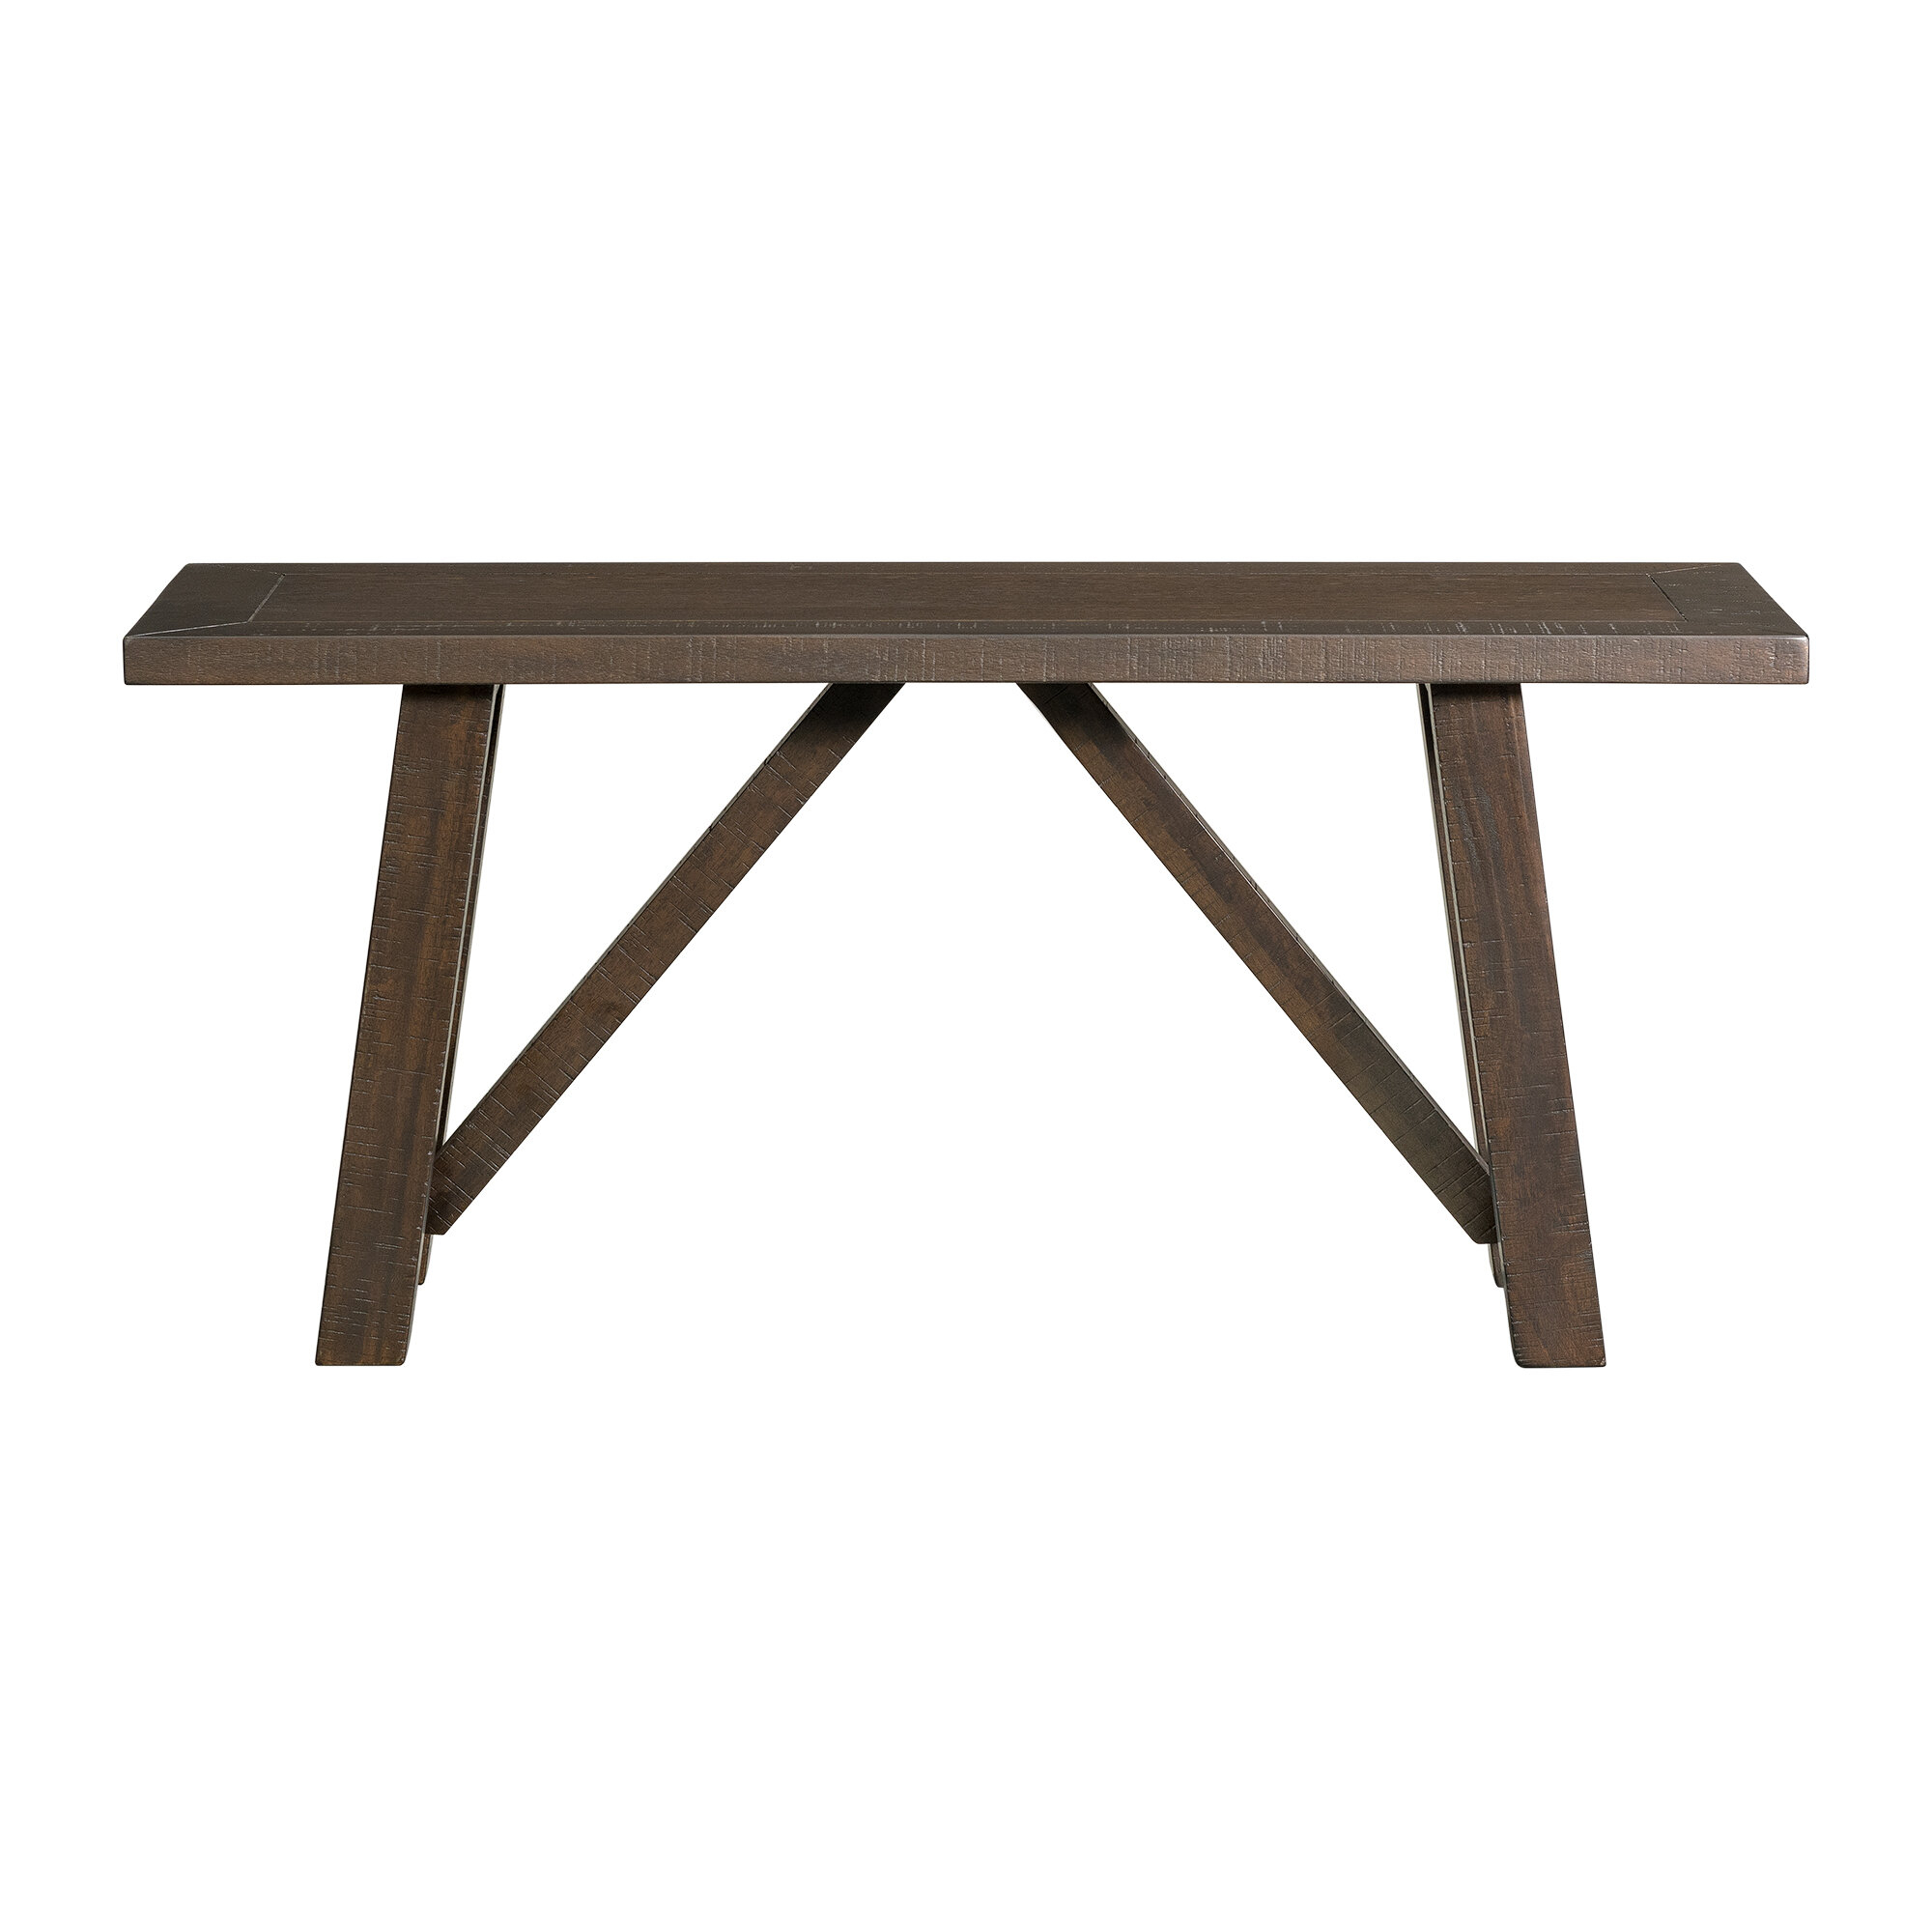 Discount Gilberto Wood Bench | Furniture Online Intended For Maliyah Wooden Garden Benches (View 22 of 25)